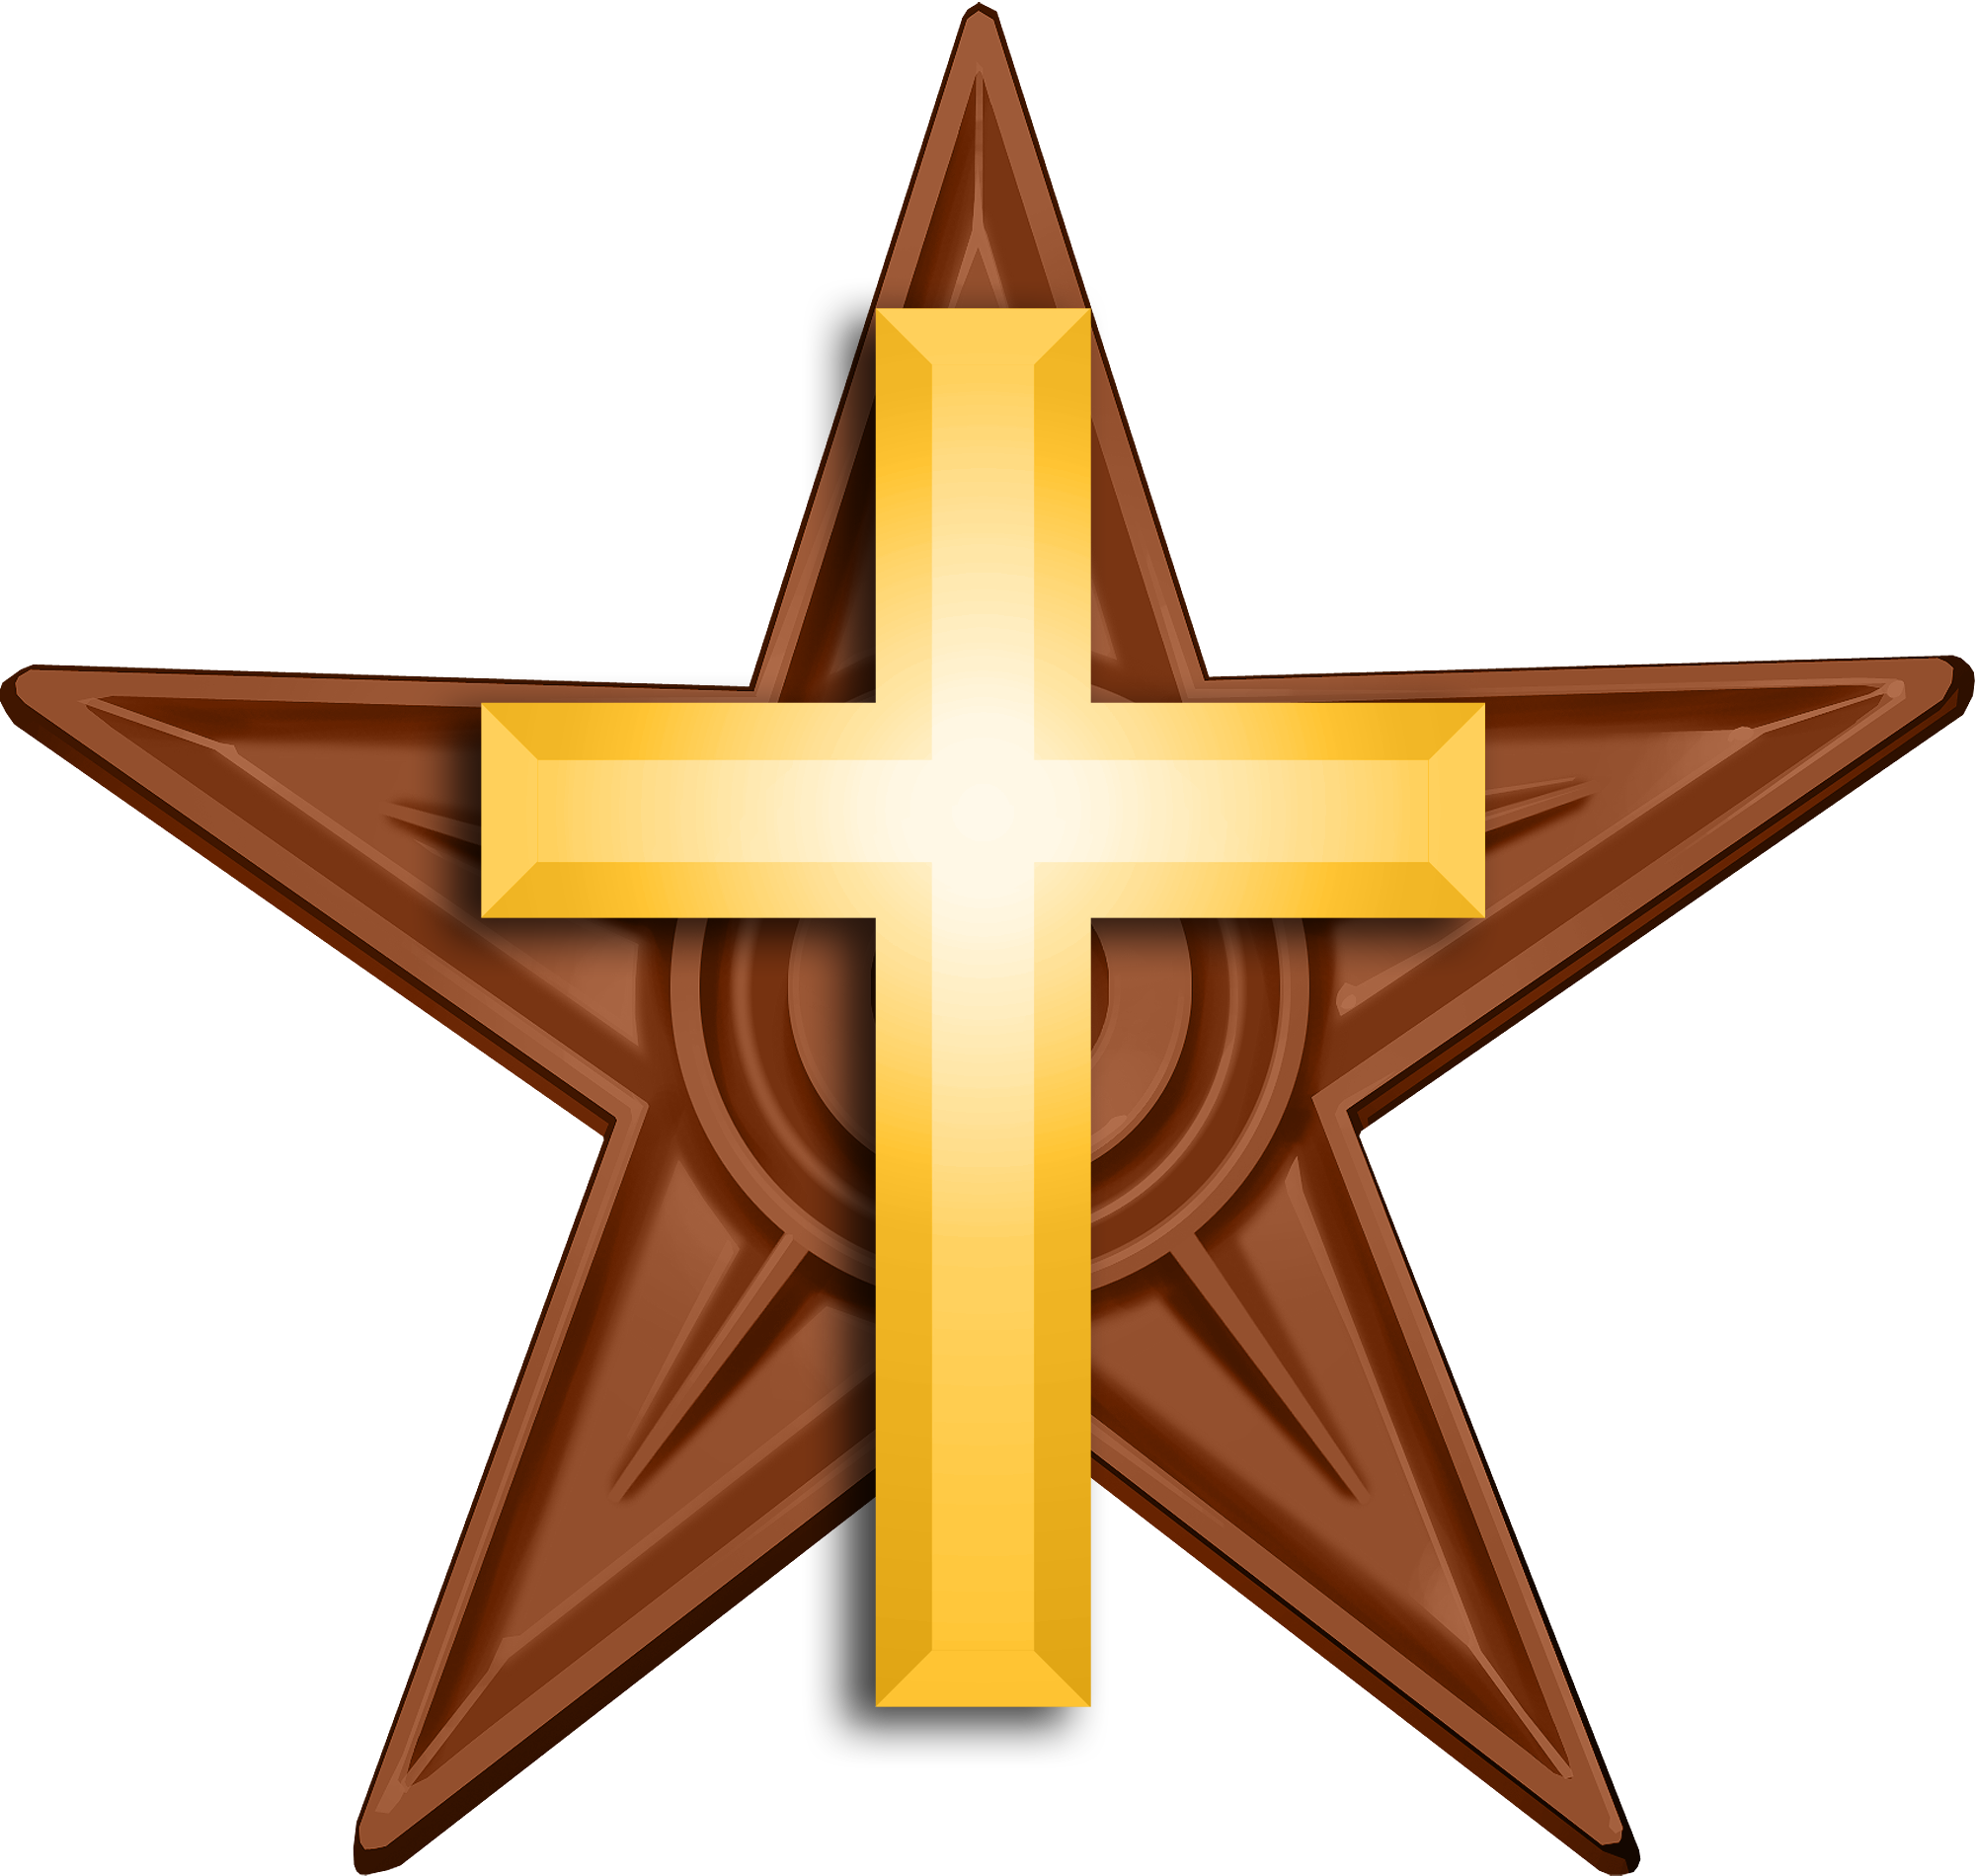 FileChristian Barnstar Hirespng Wikimedia Commons - Christian